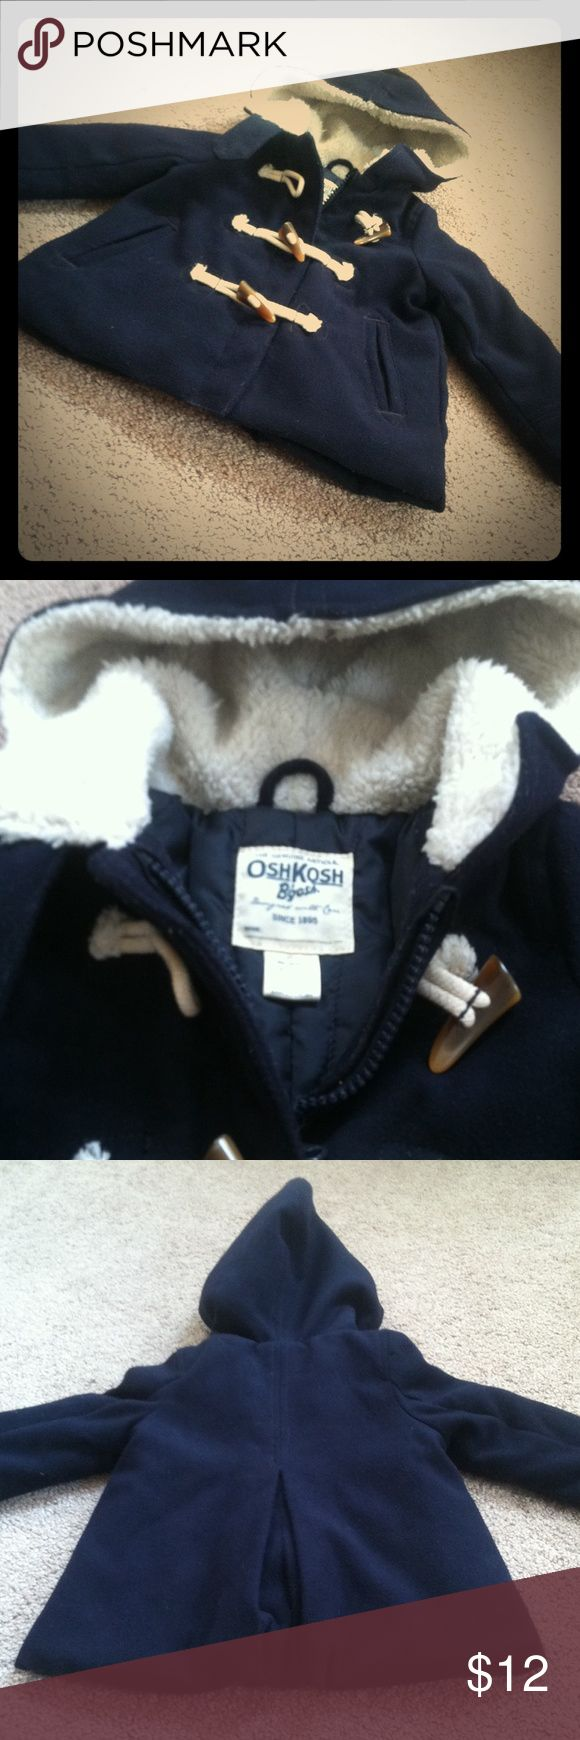 Navy Blue 2T Girl's PeaCoat Great condition. Worn one season. Zipper and toggle buttons all work Osh Kosh Jackets & Coats Pea Coats